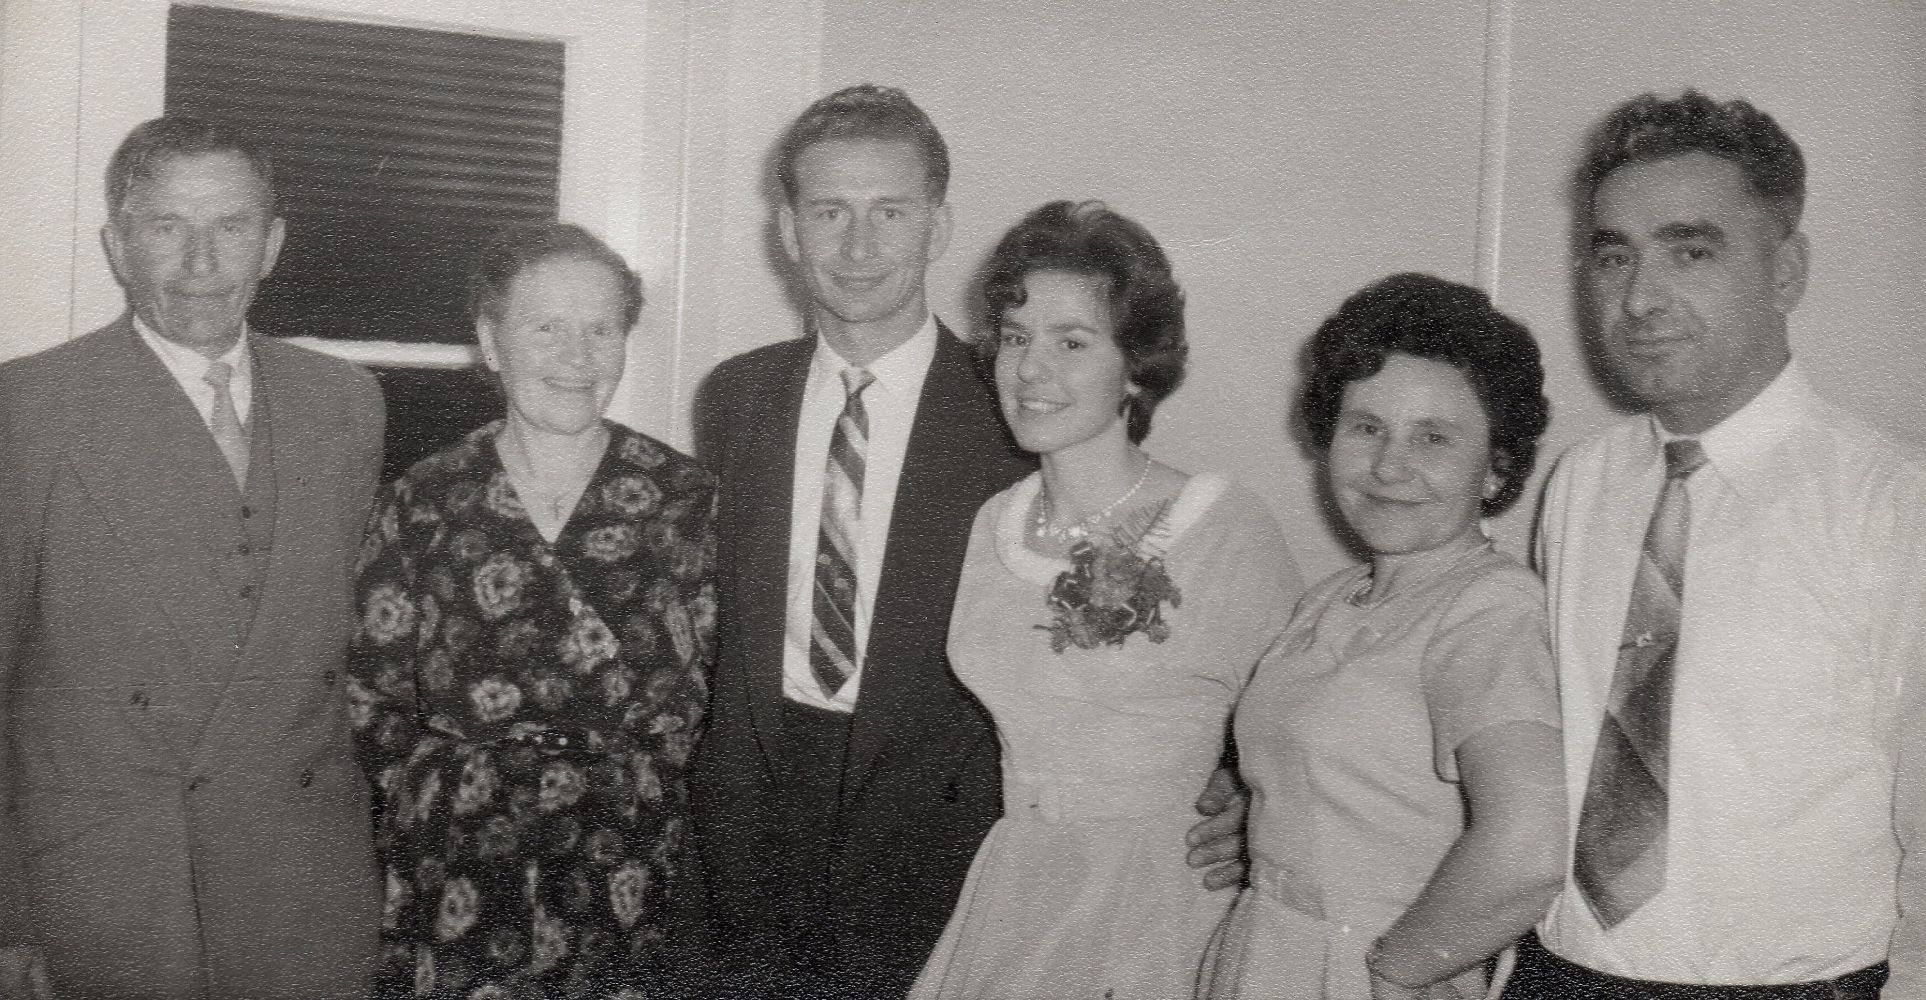 Black  and white pic of Zenona and Michał between their parents of either side. All are smiling and Zenona's mother has her hand of  her hip. Zenona and Emilja are in light-coloured dresses and Michał and his father in suits. Zofia is wearing a flowered  dress and Jozef Cyckoma has his jacket off.